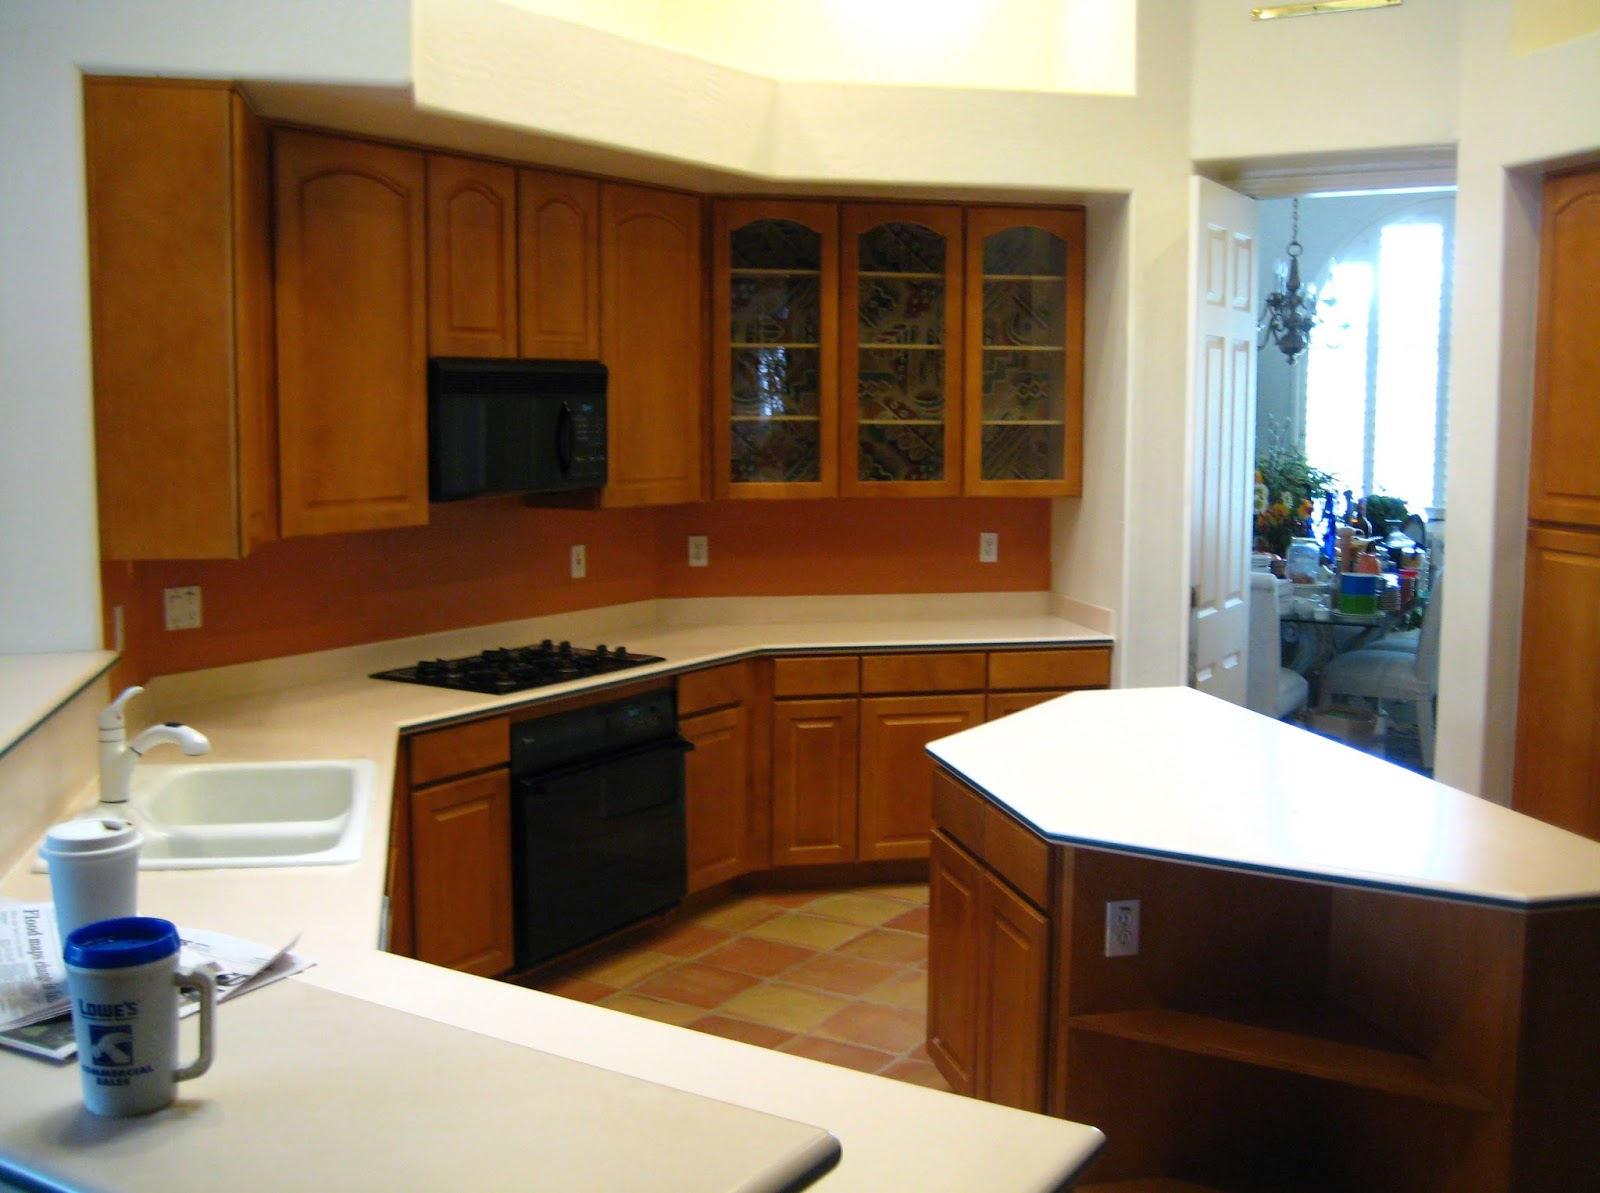 Do it yourself diy kitchen remodel on a budget home for Kitchen remodels on a budget photos